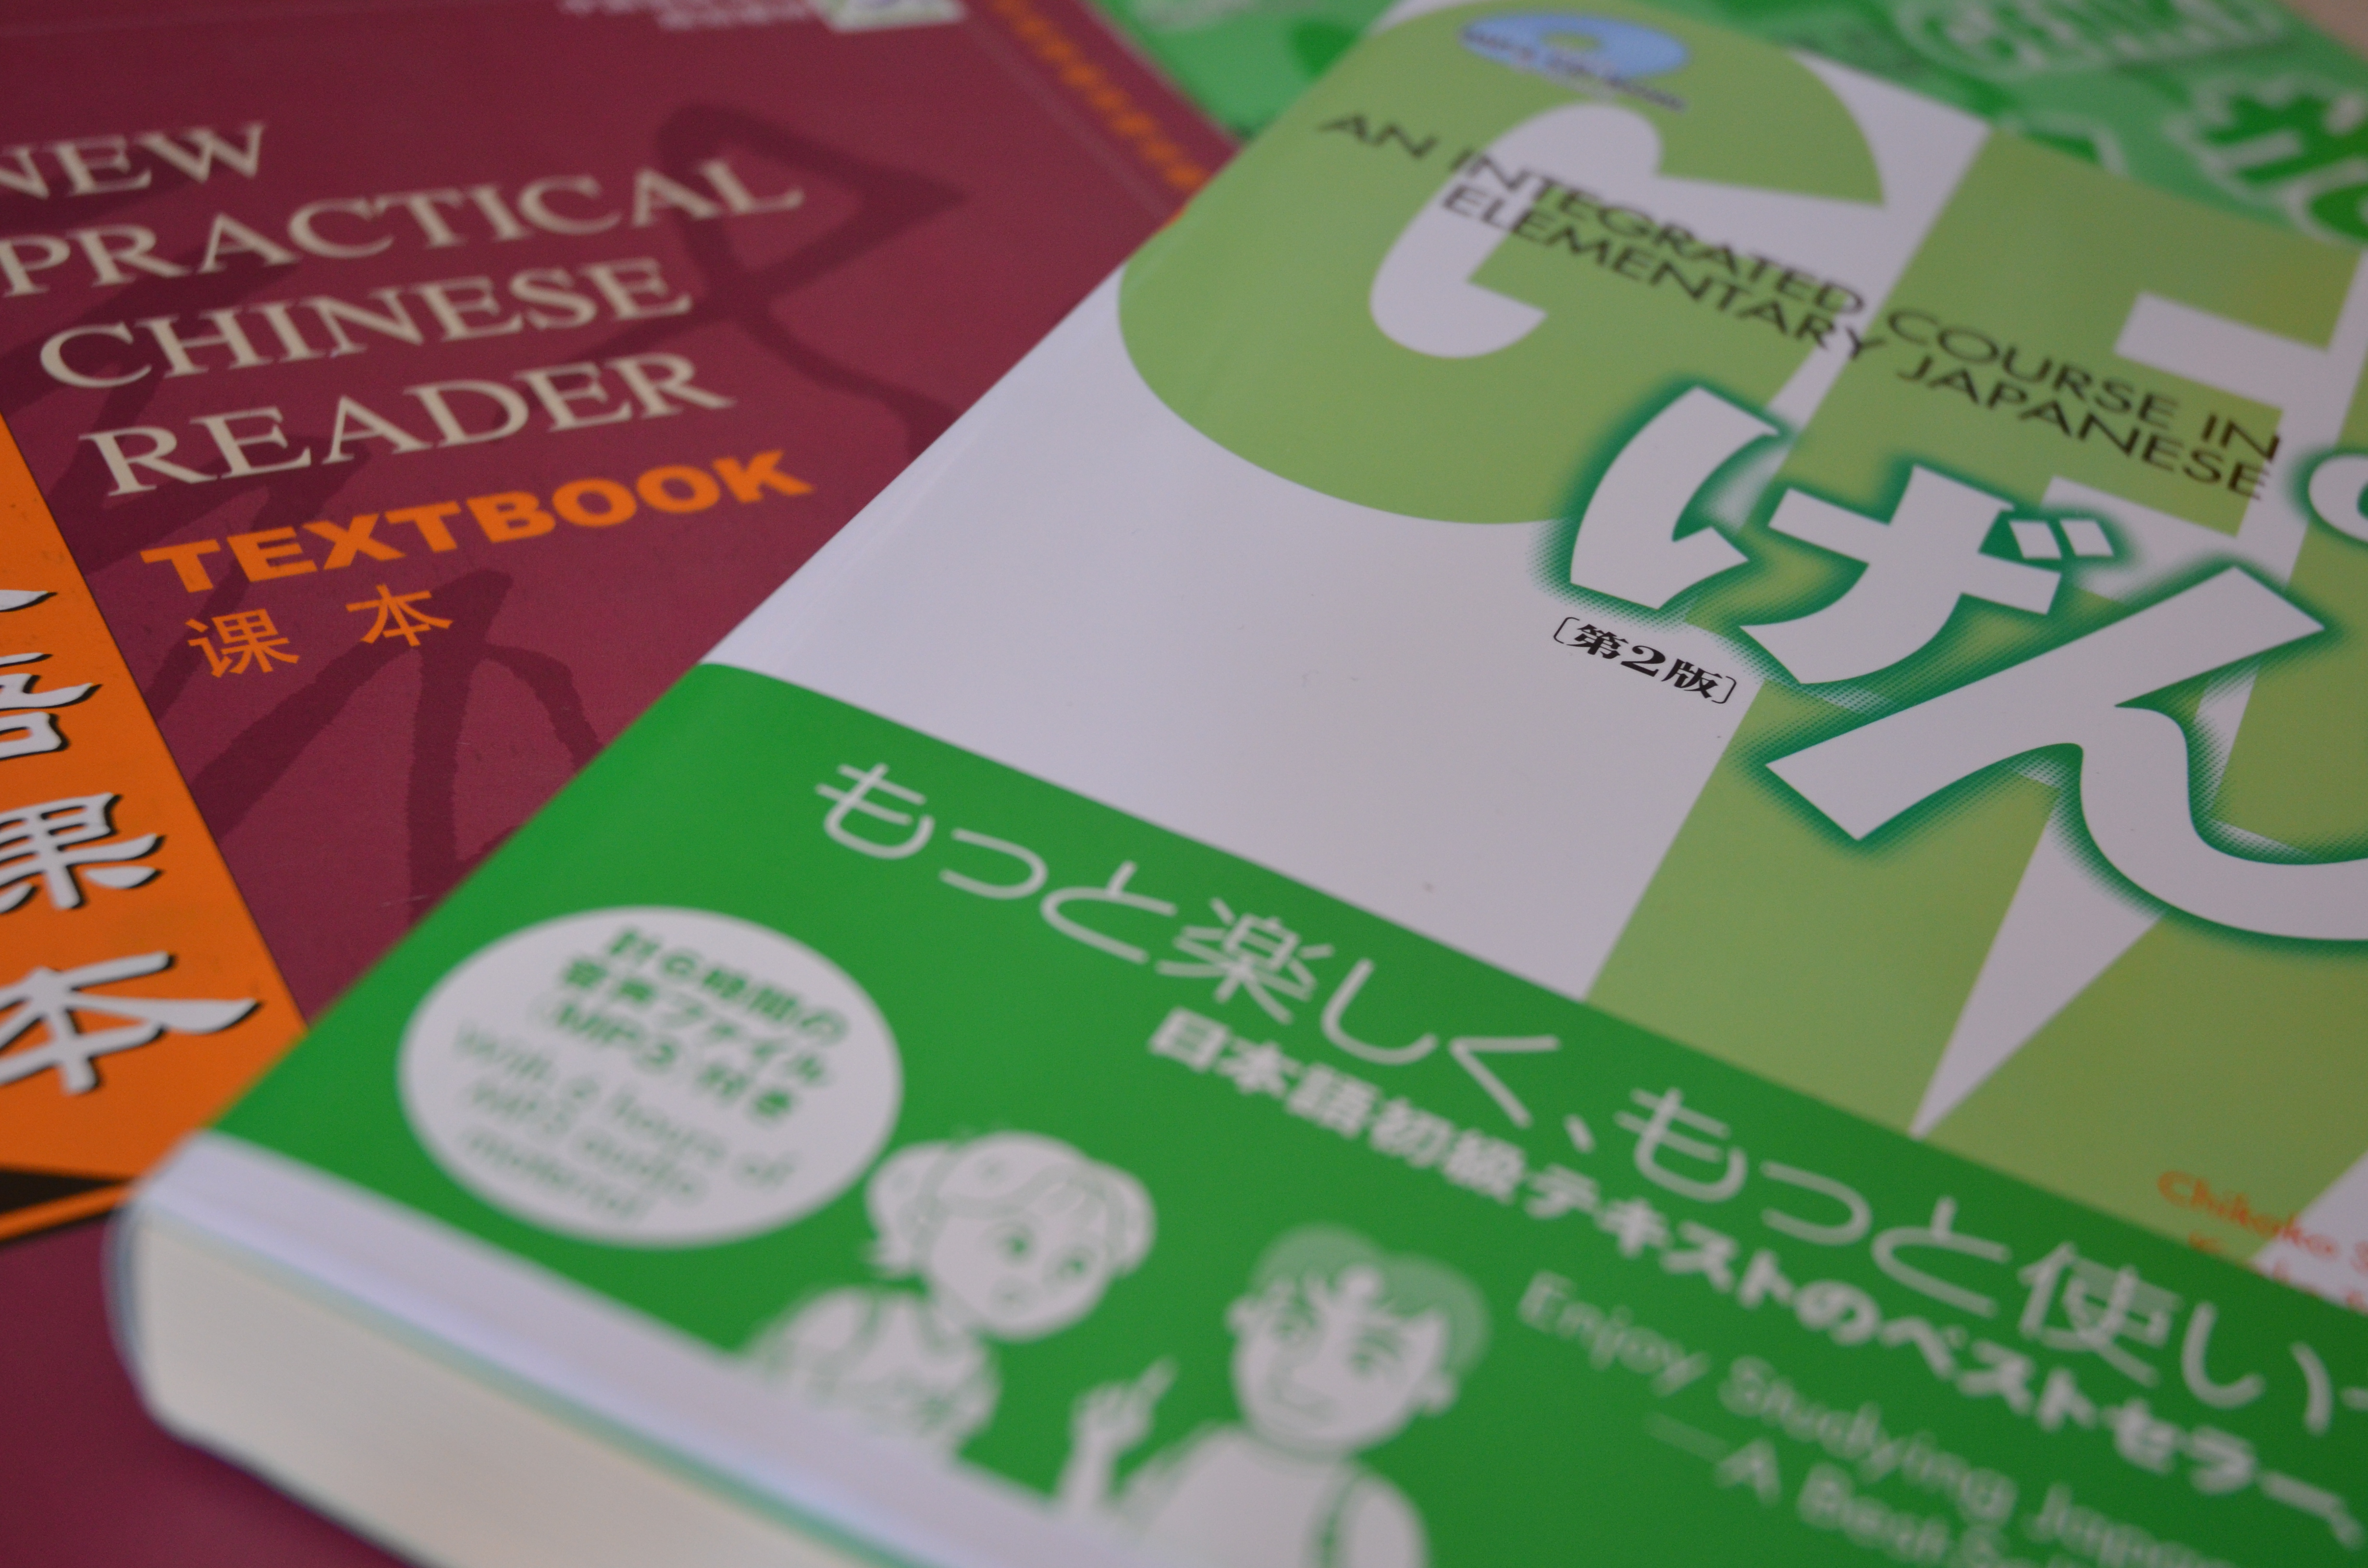 Japanese vs. Chinese: What's the Difference?